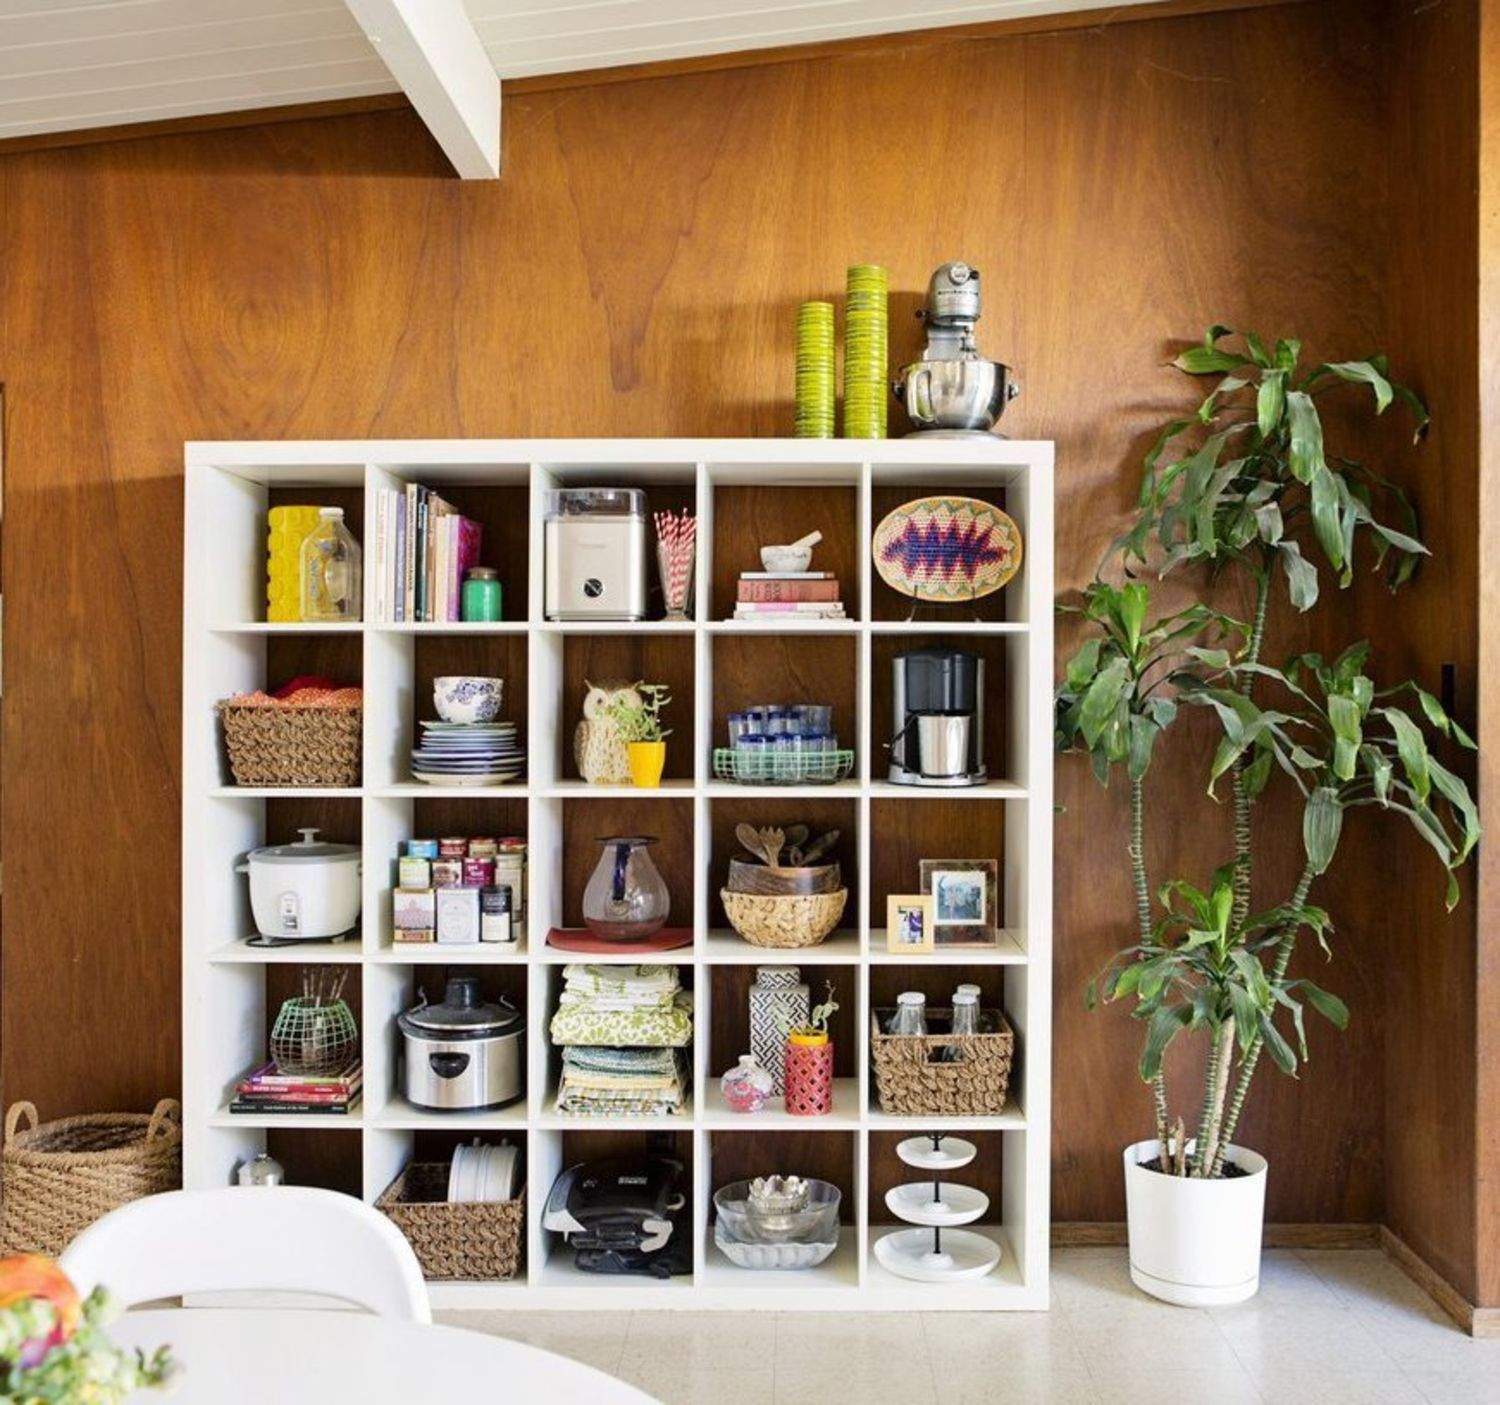 Ikea Expedit Kitchen: The IKEA Expedit Bookshelf Makes A Great Kitchen Cubby